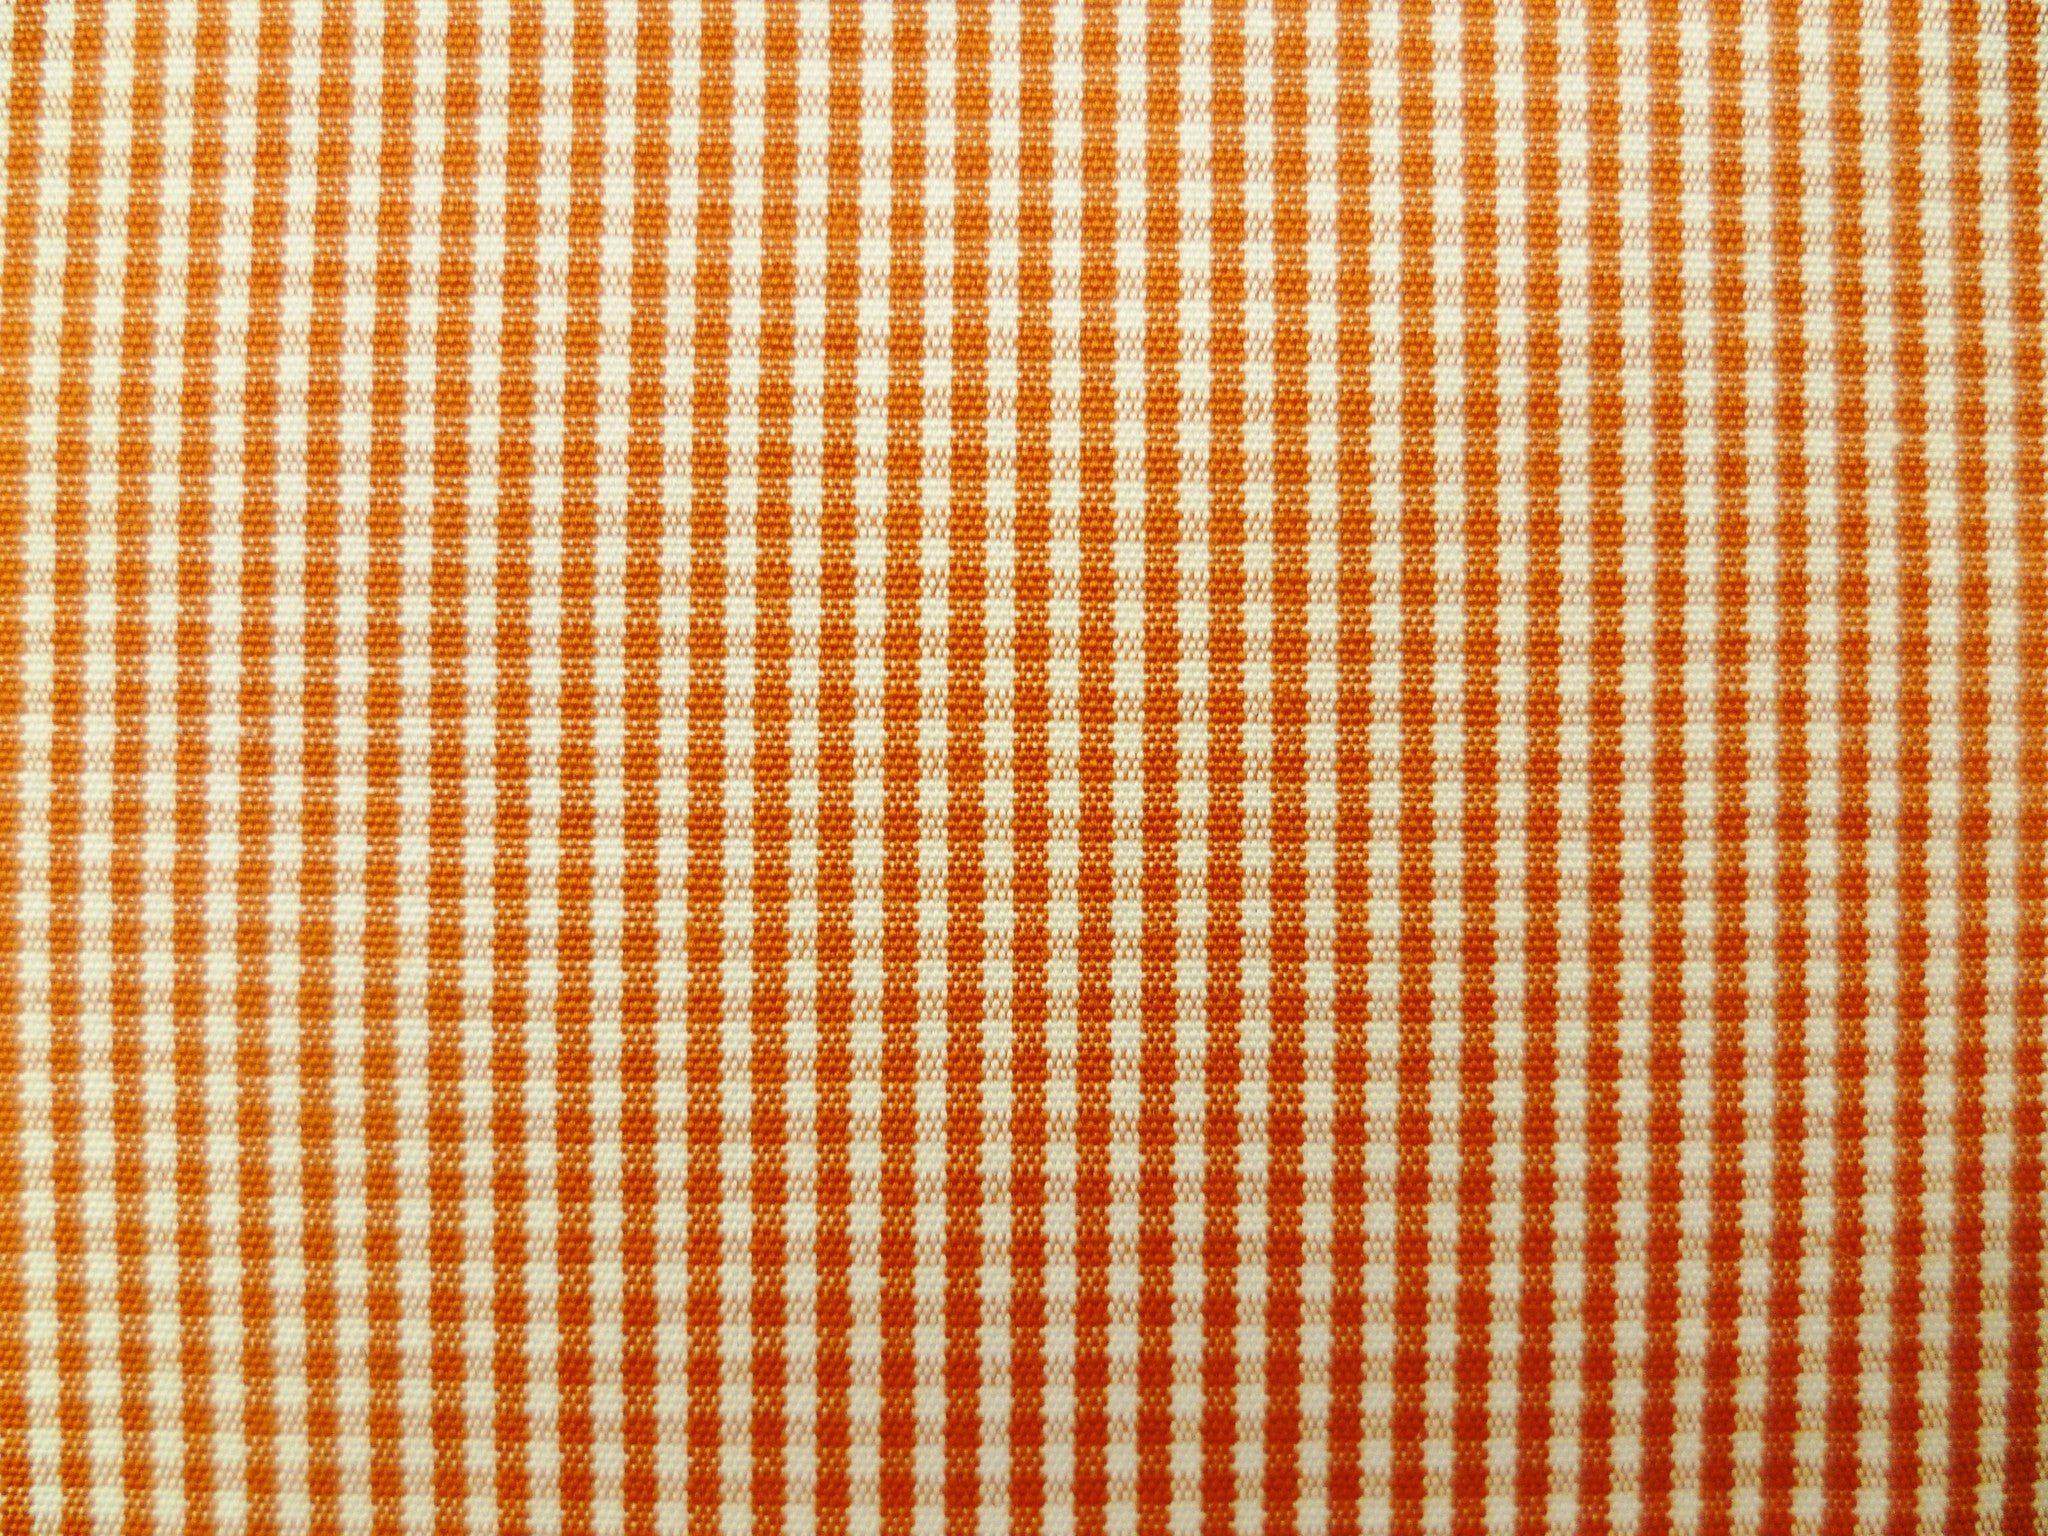 Red-Orange and White Gingham Checked Cotton